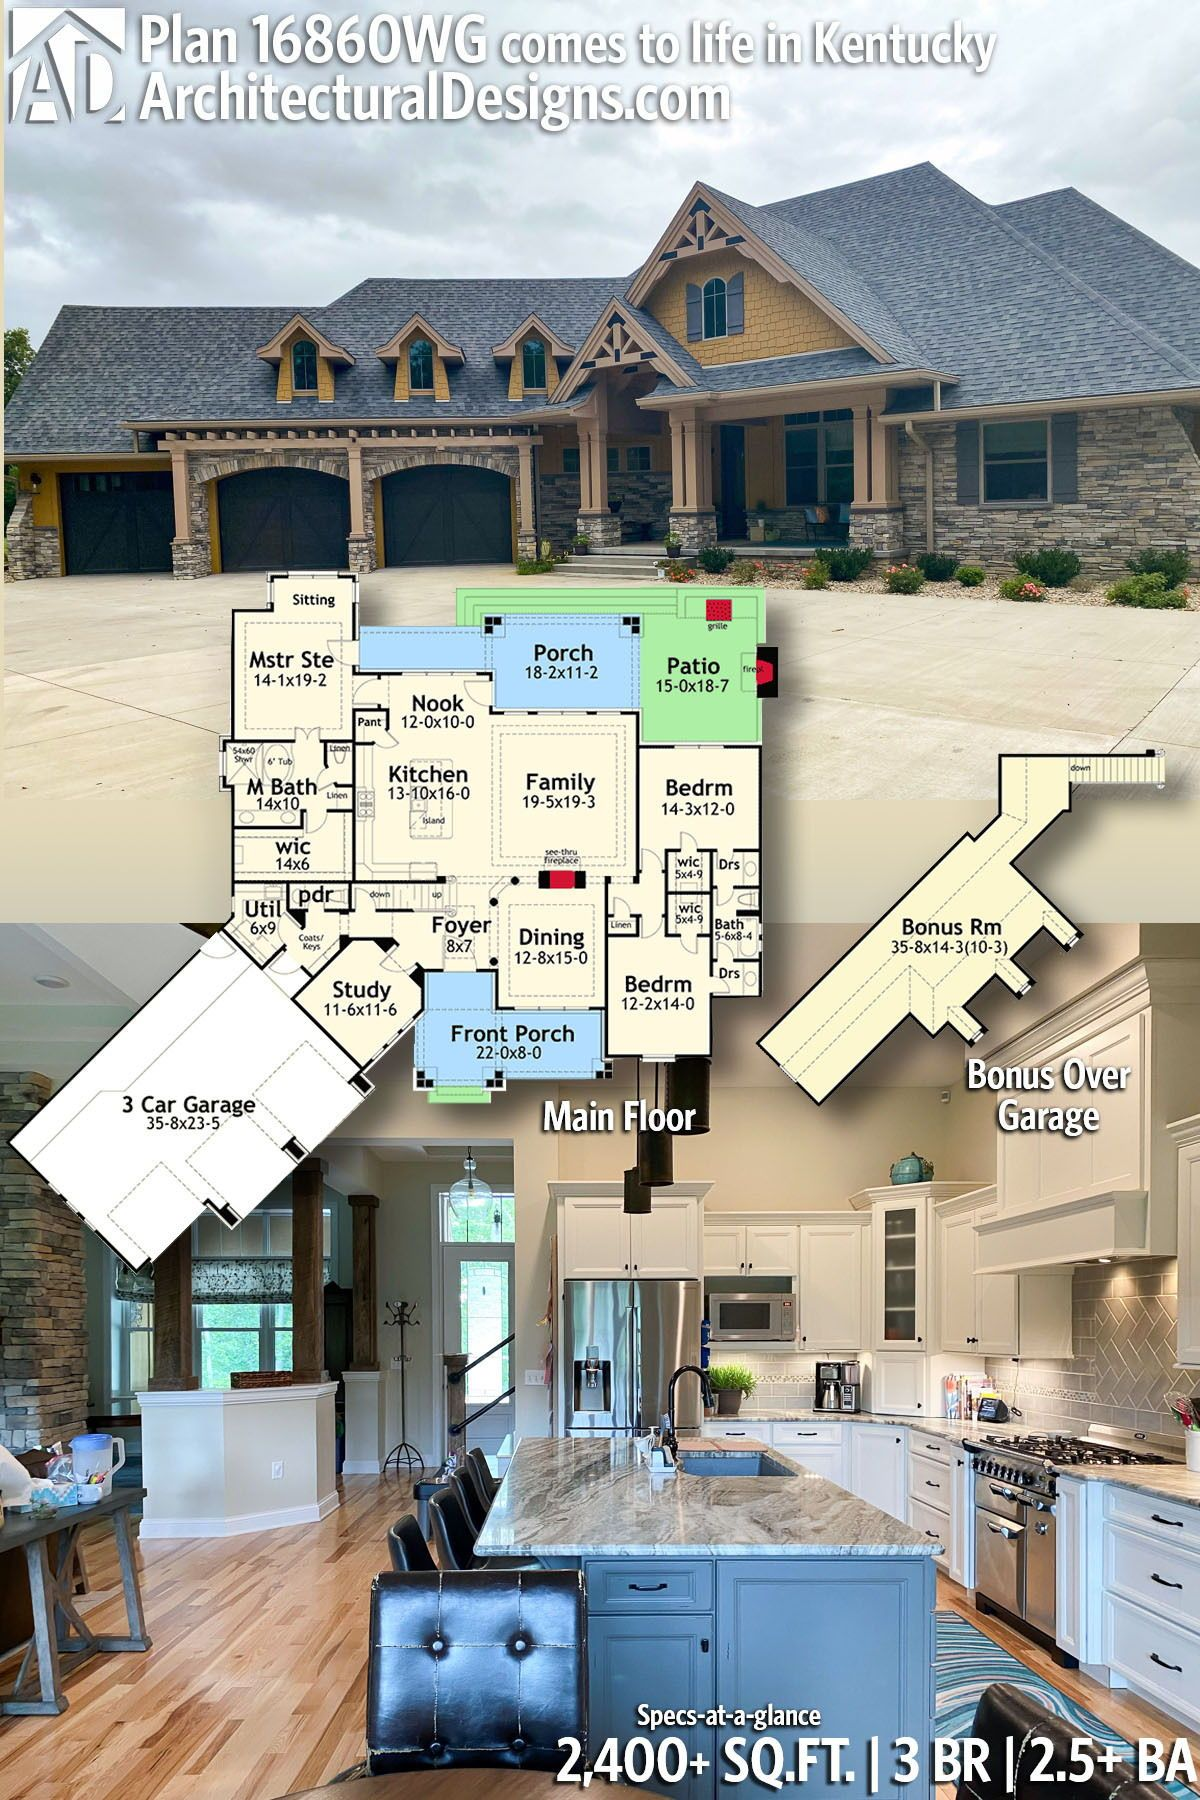 Plan 16860wg New Look Mountain Retreat Dream House Plans New House Plans How To Plan